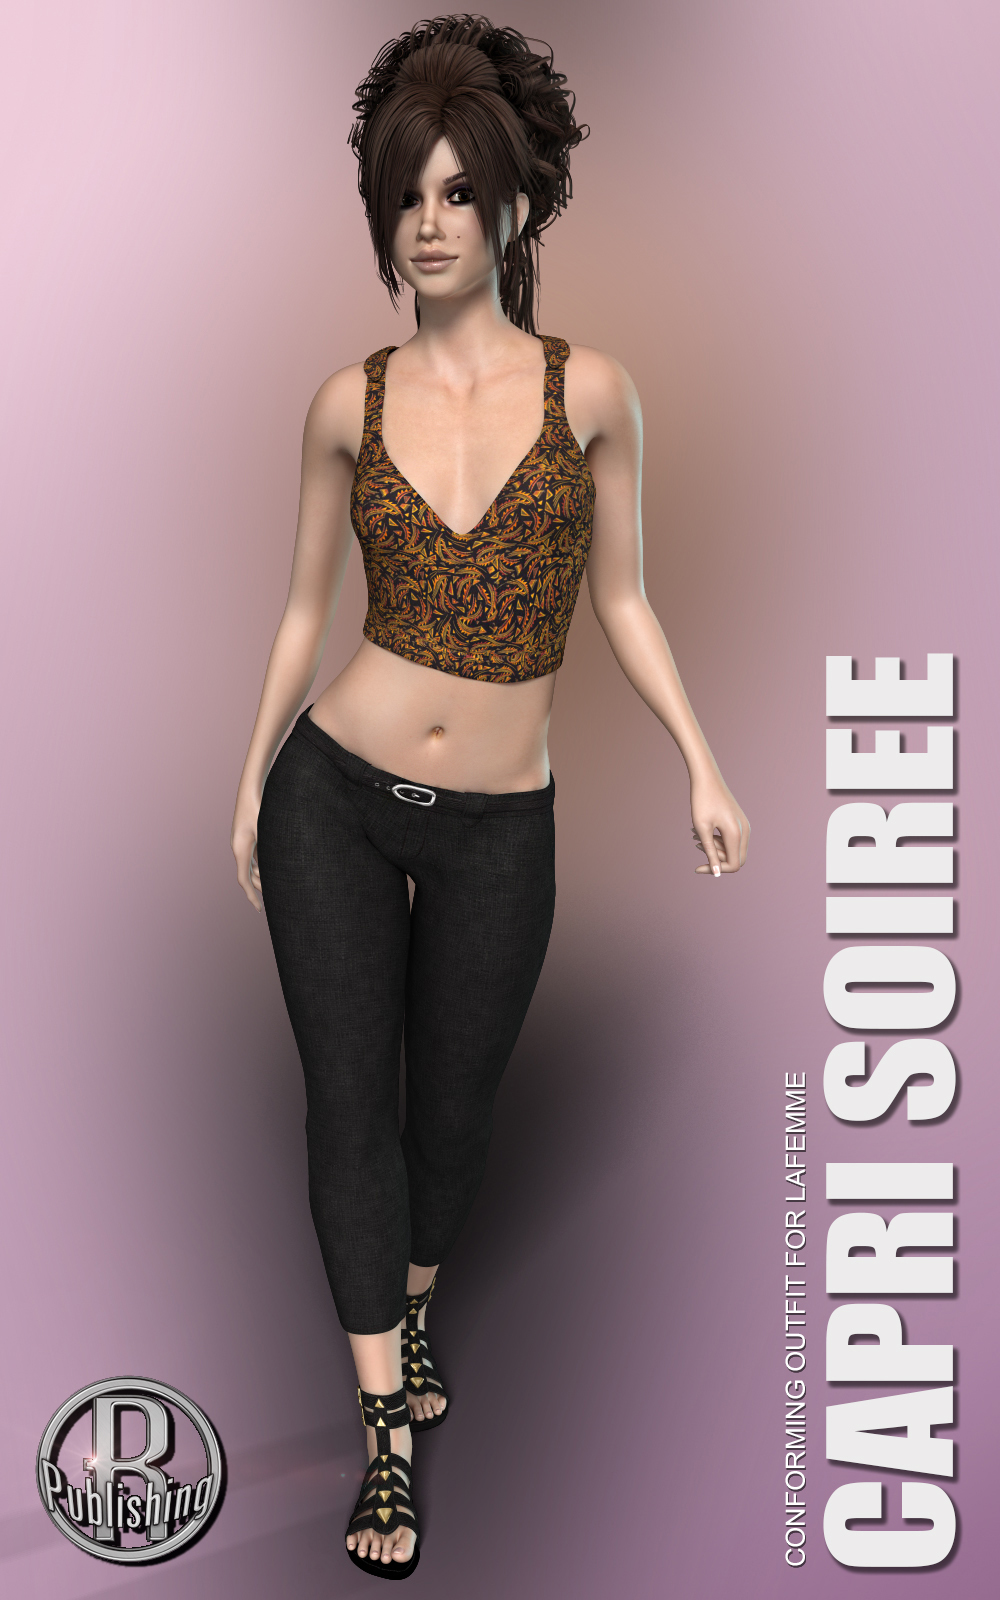 Capri Soiree for La Femme by RPublishing